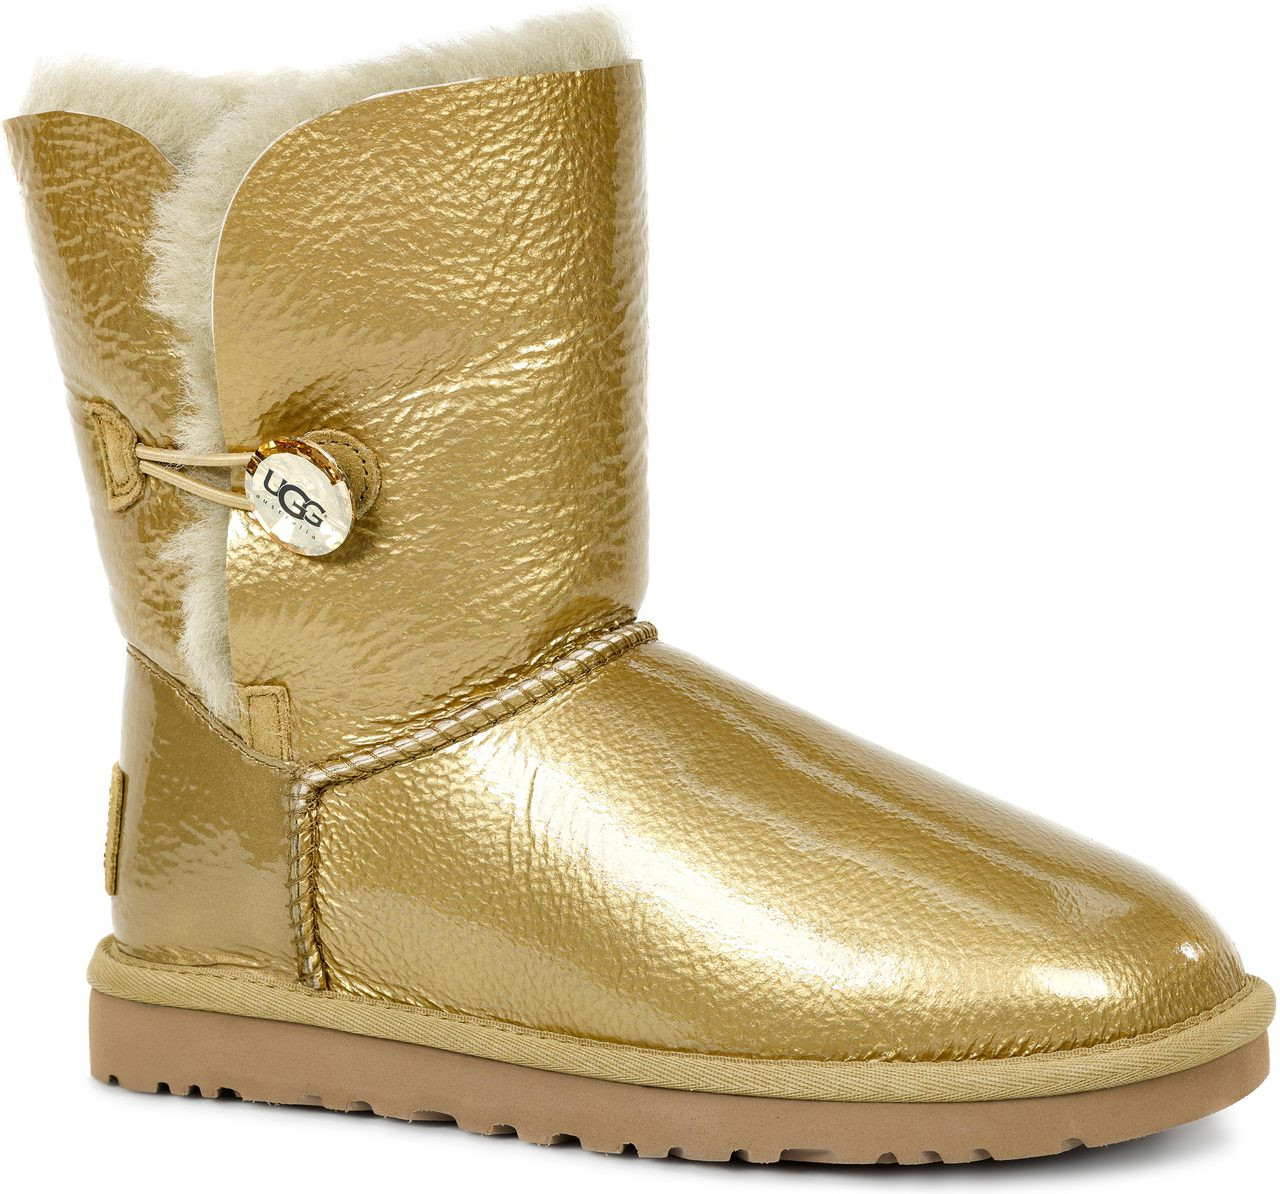 ... Casual Boots; UGG Women's Bailey Button Mirage. Soft Gold